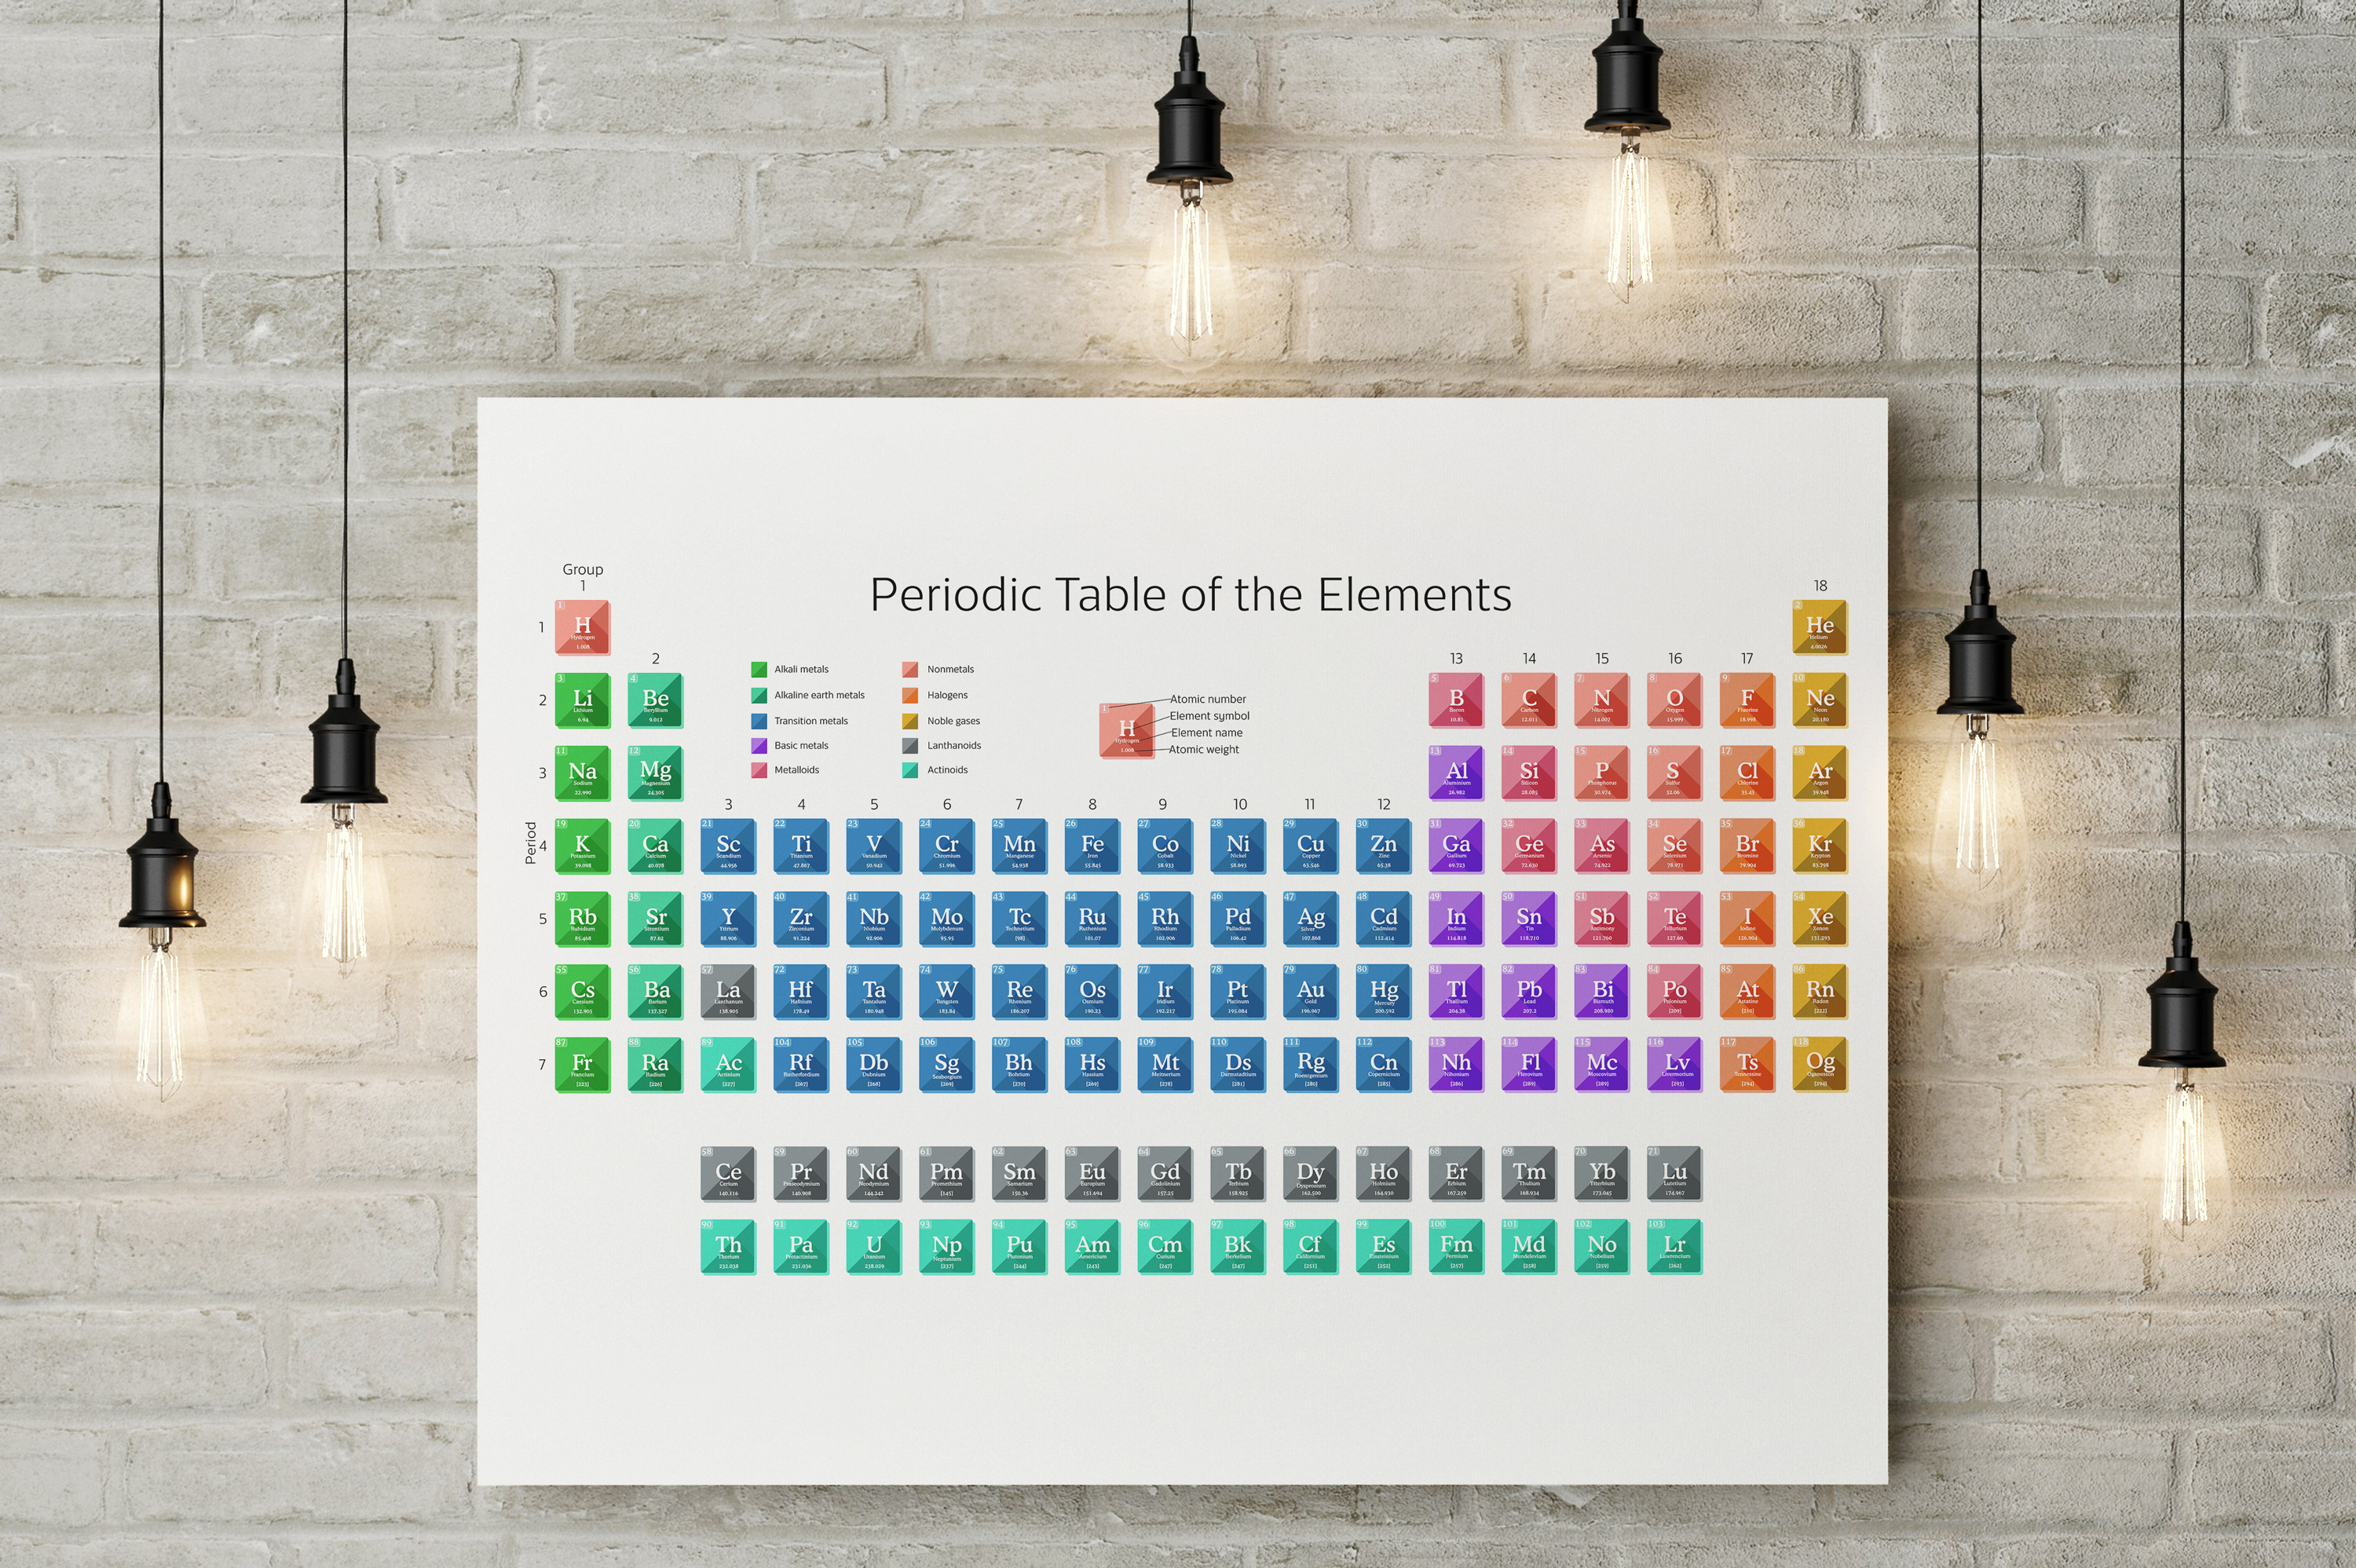 Periodic table of the elements by inko design bundles periodic table of the elements example image 1 urtaz